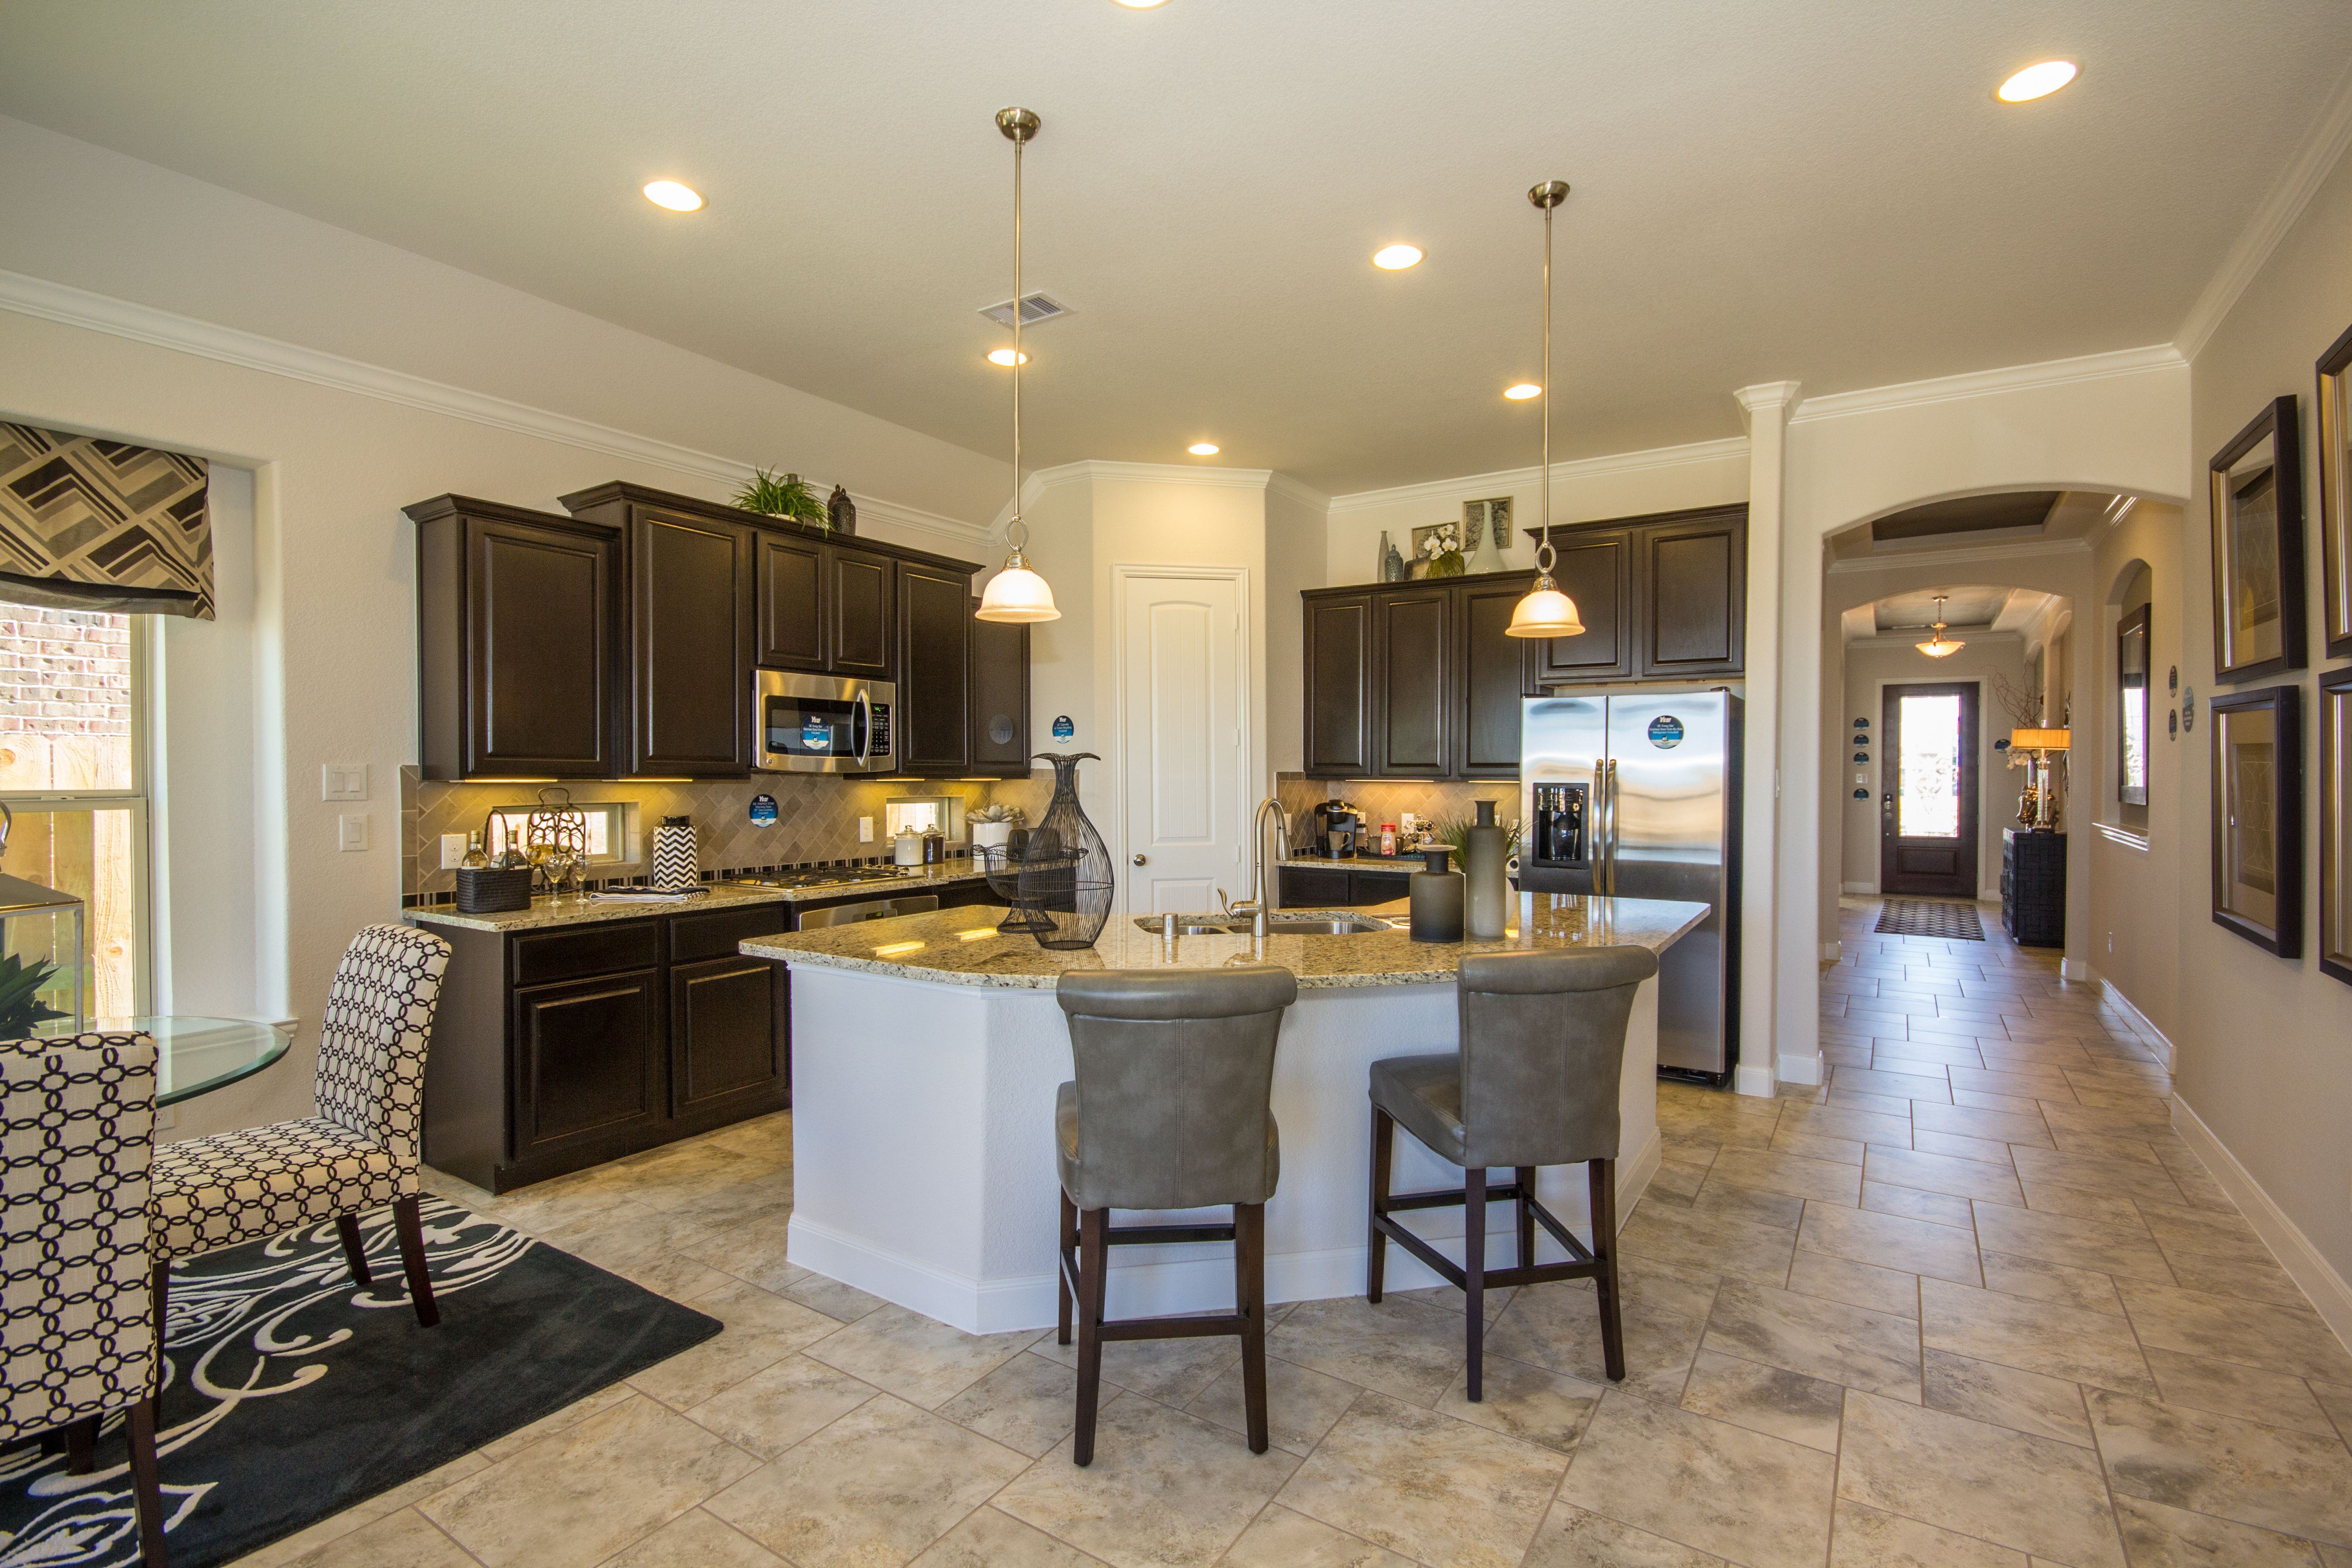 lennar model home kitchen - Google Search | Home kitchens ...